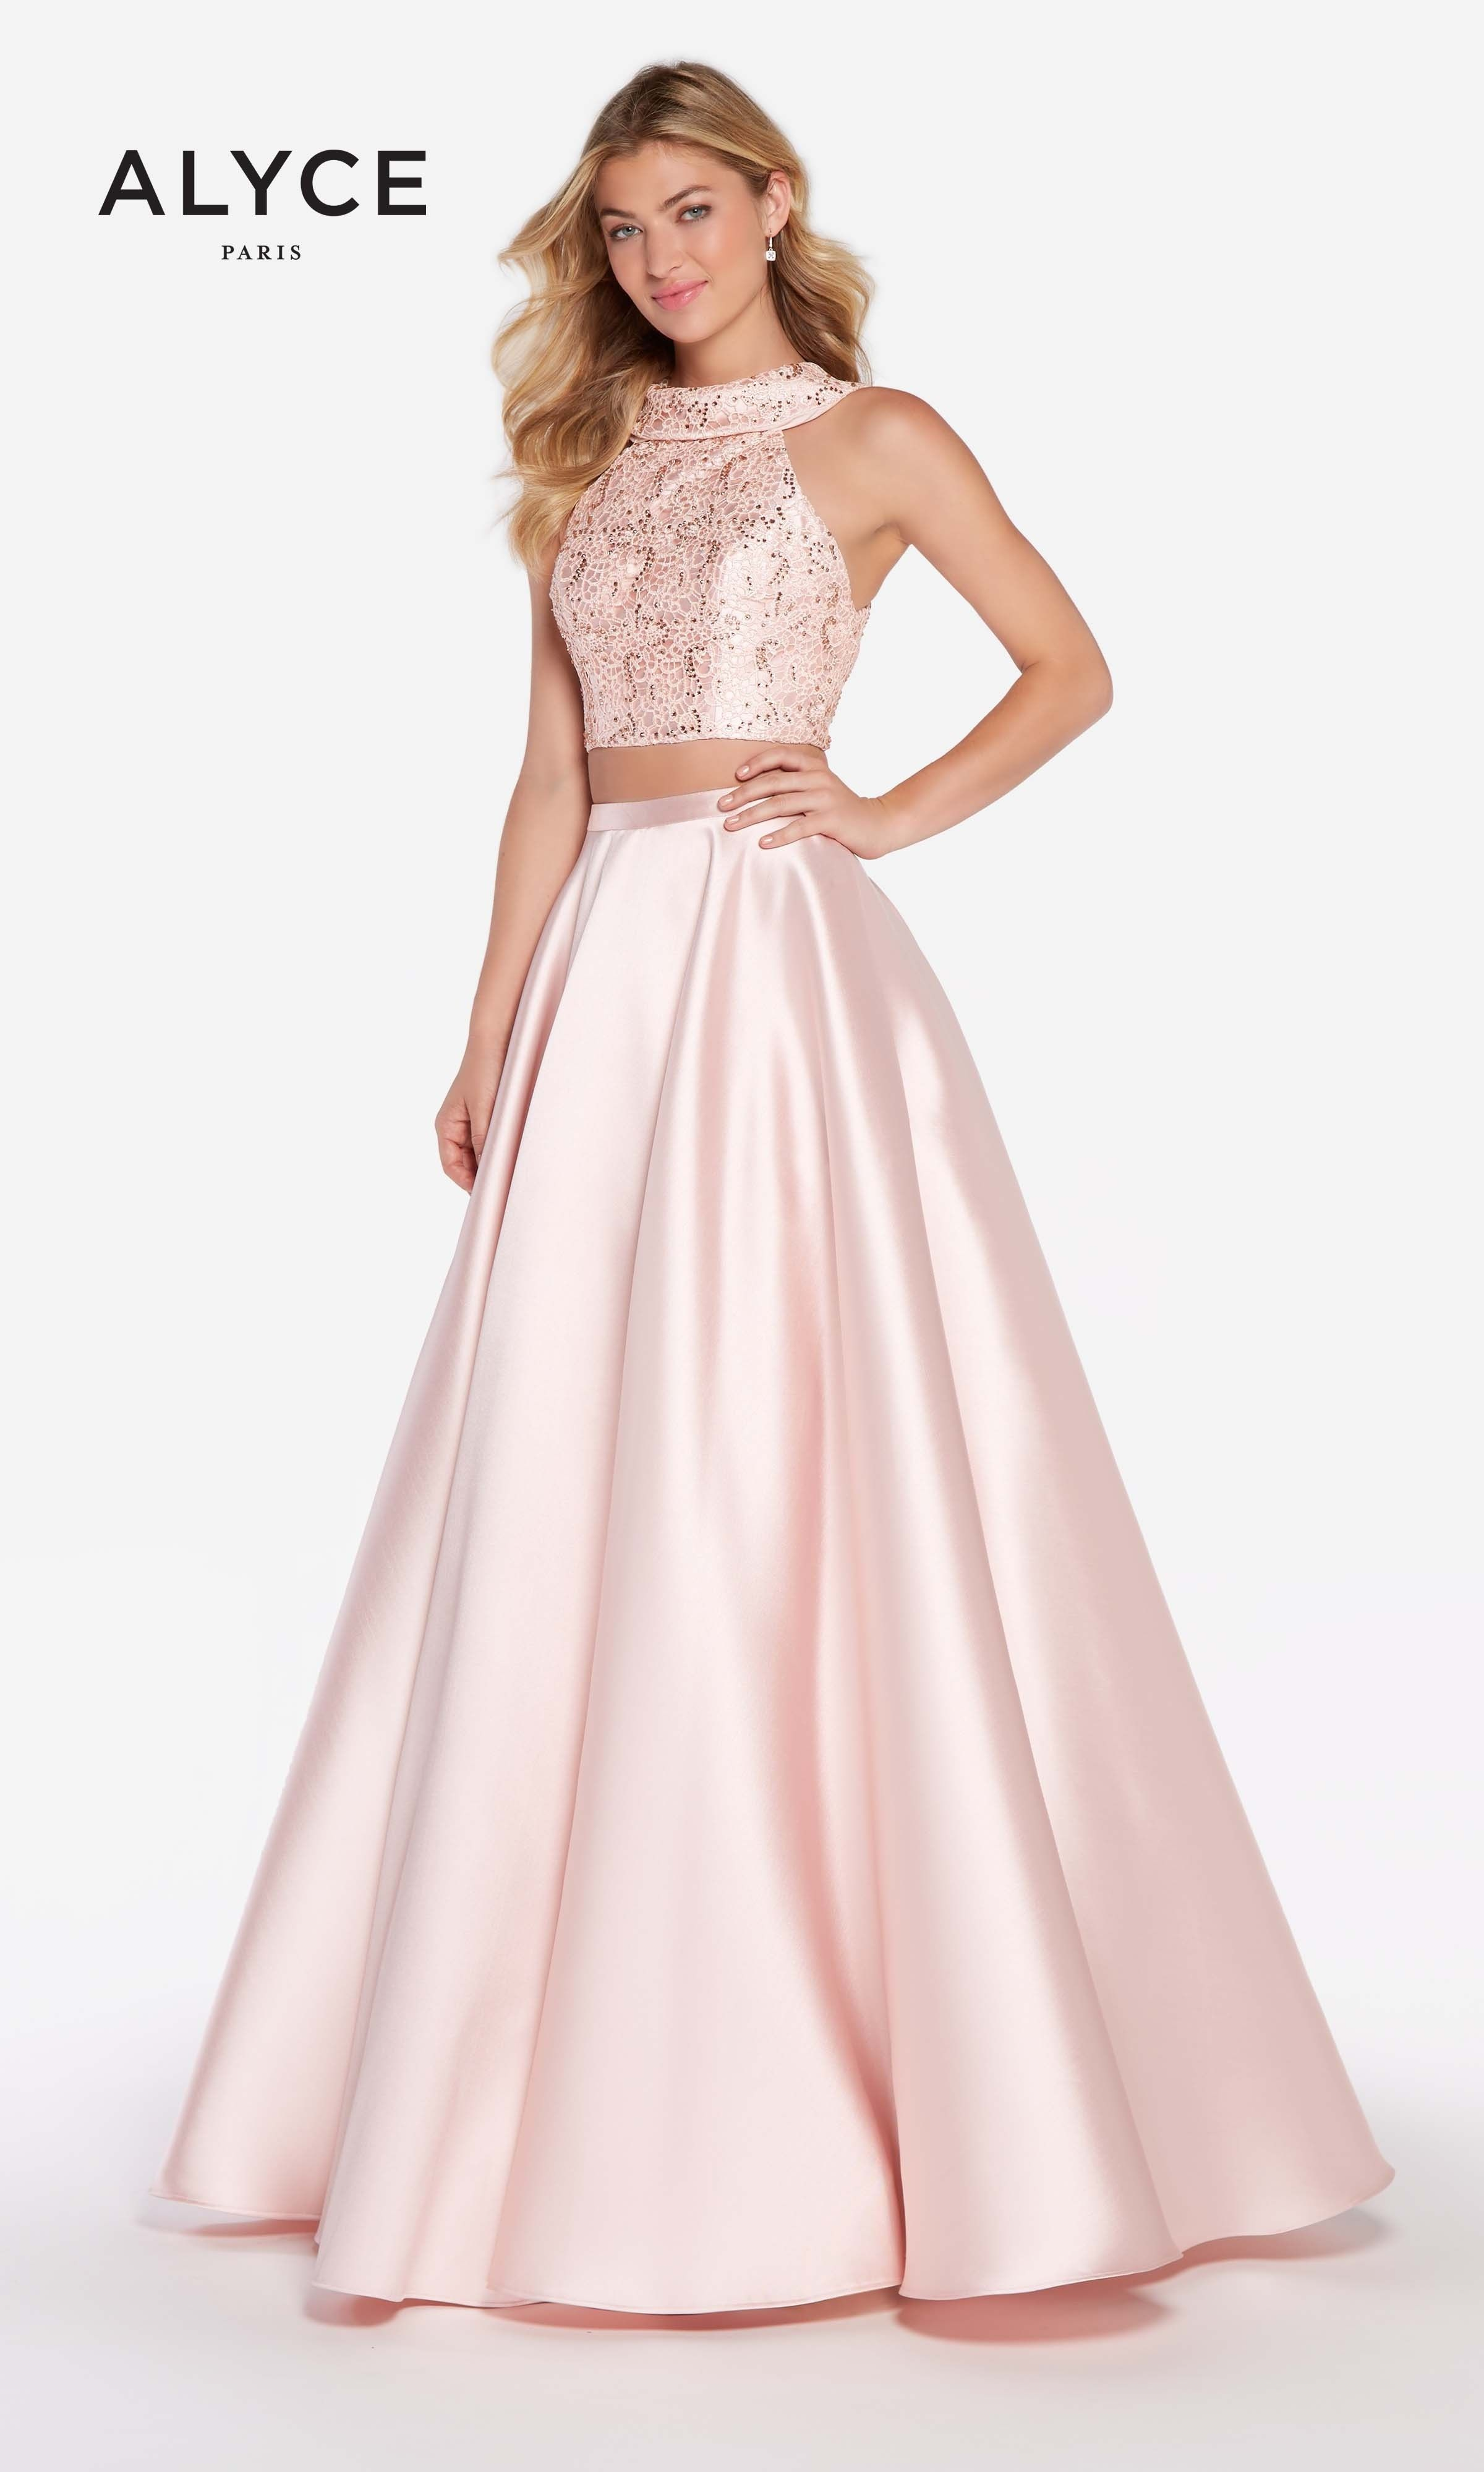 89e1232de5ad54 This two piece ball gown features full shiny mikado skirt which sits right  at the natural waist. The matching lace crop top features a cowl ...